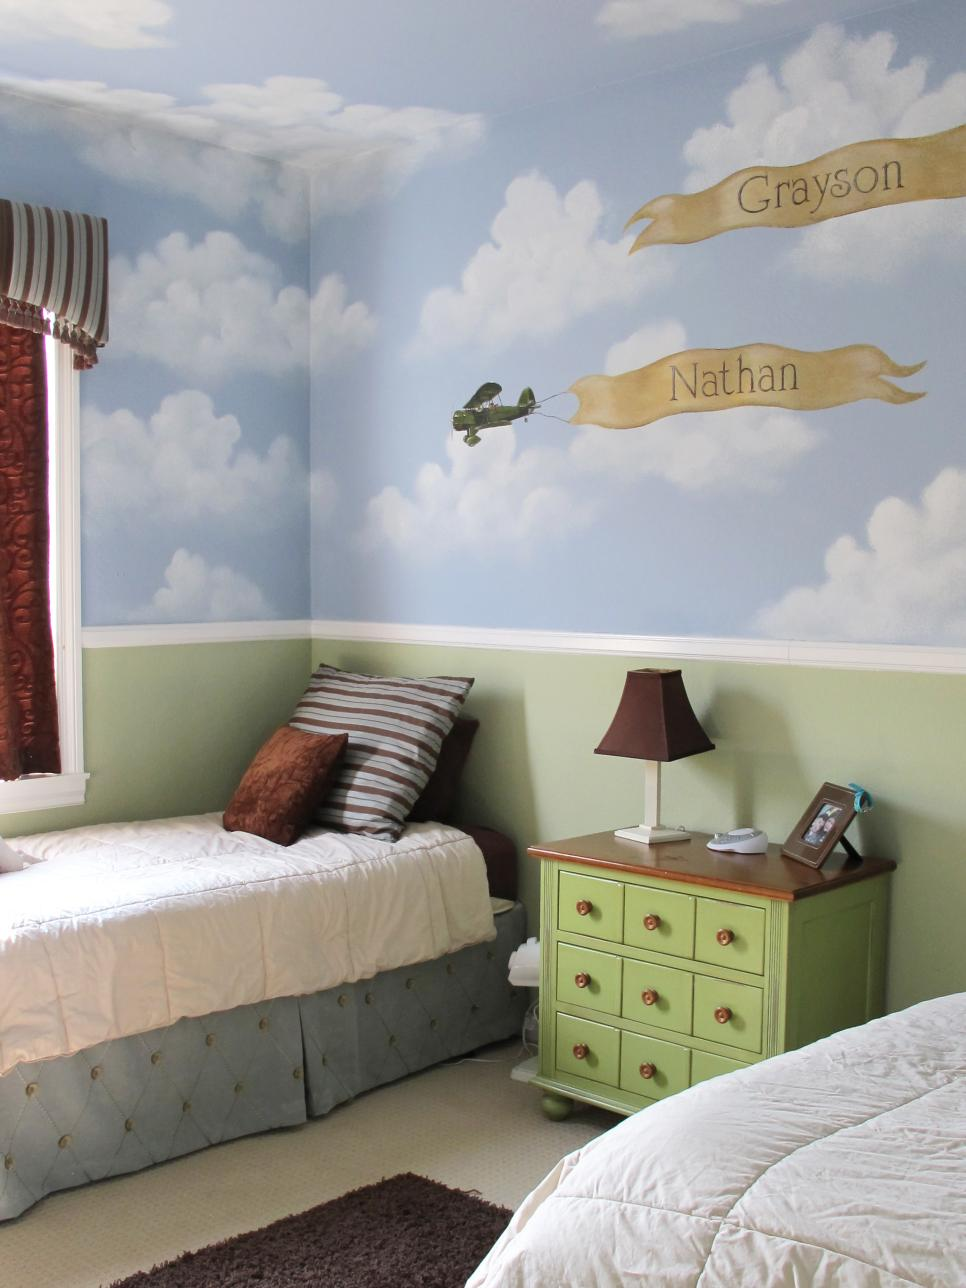 Shared Kids' Room Design Ideas